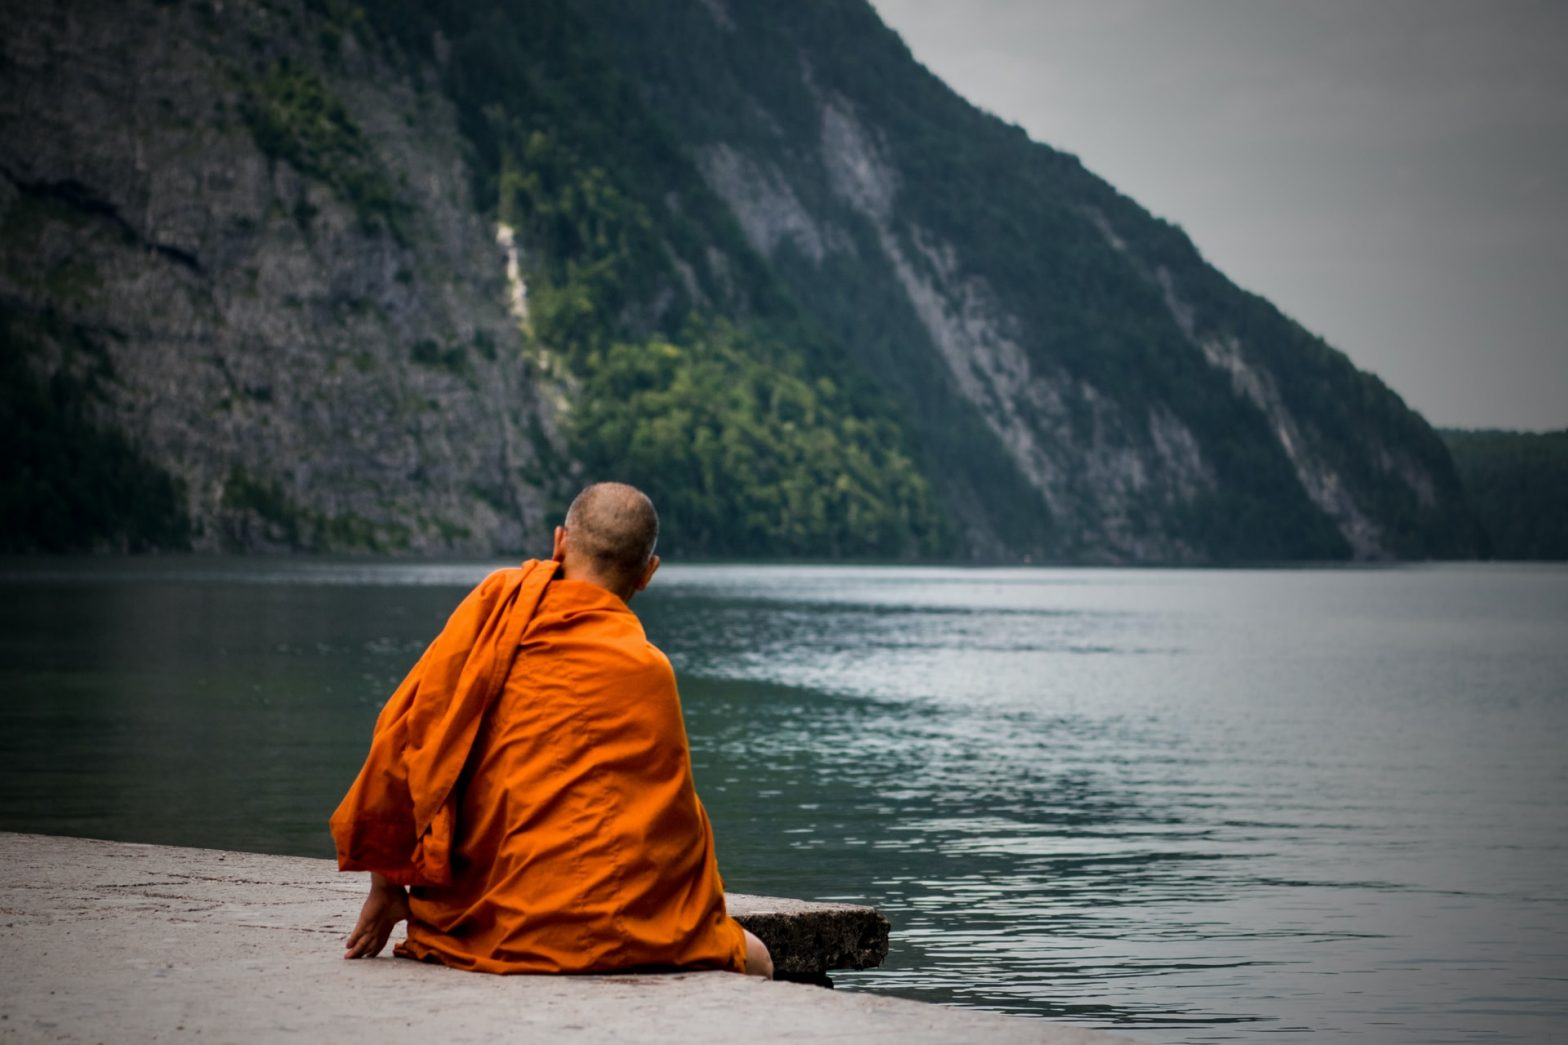 Are you a monk?